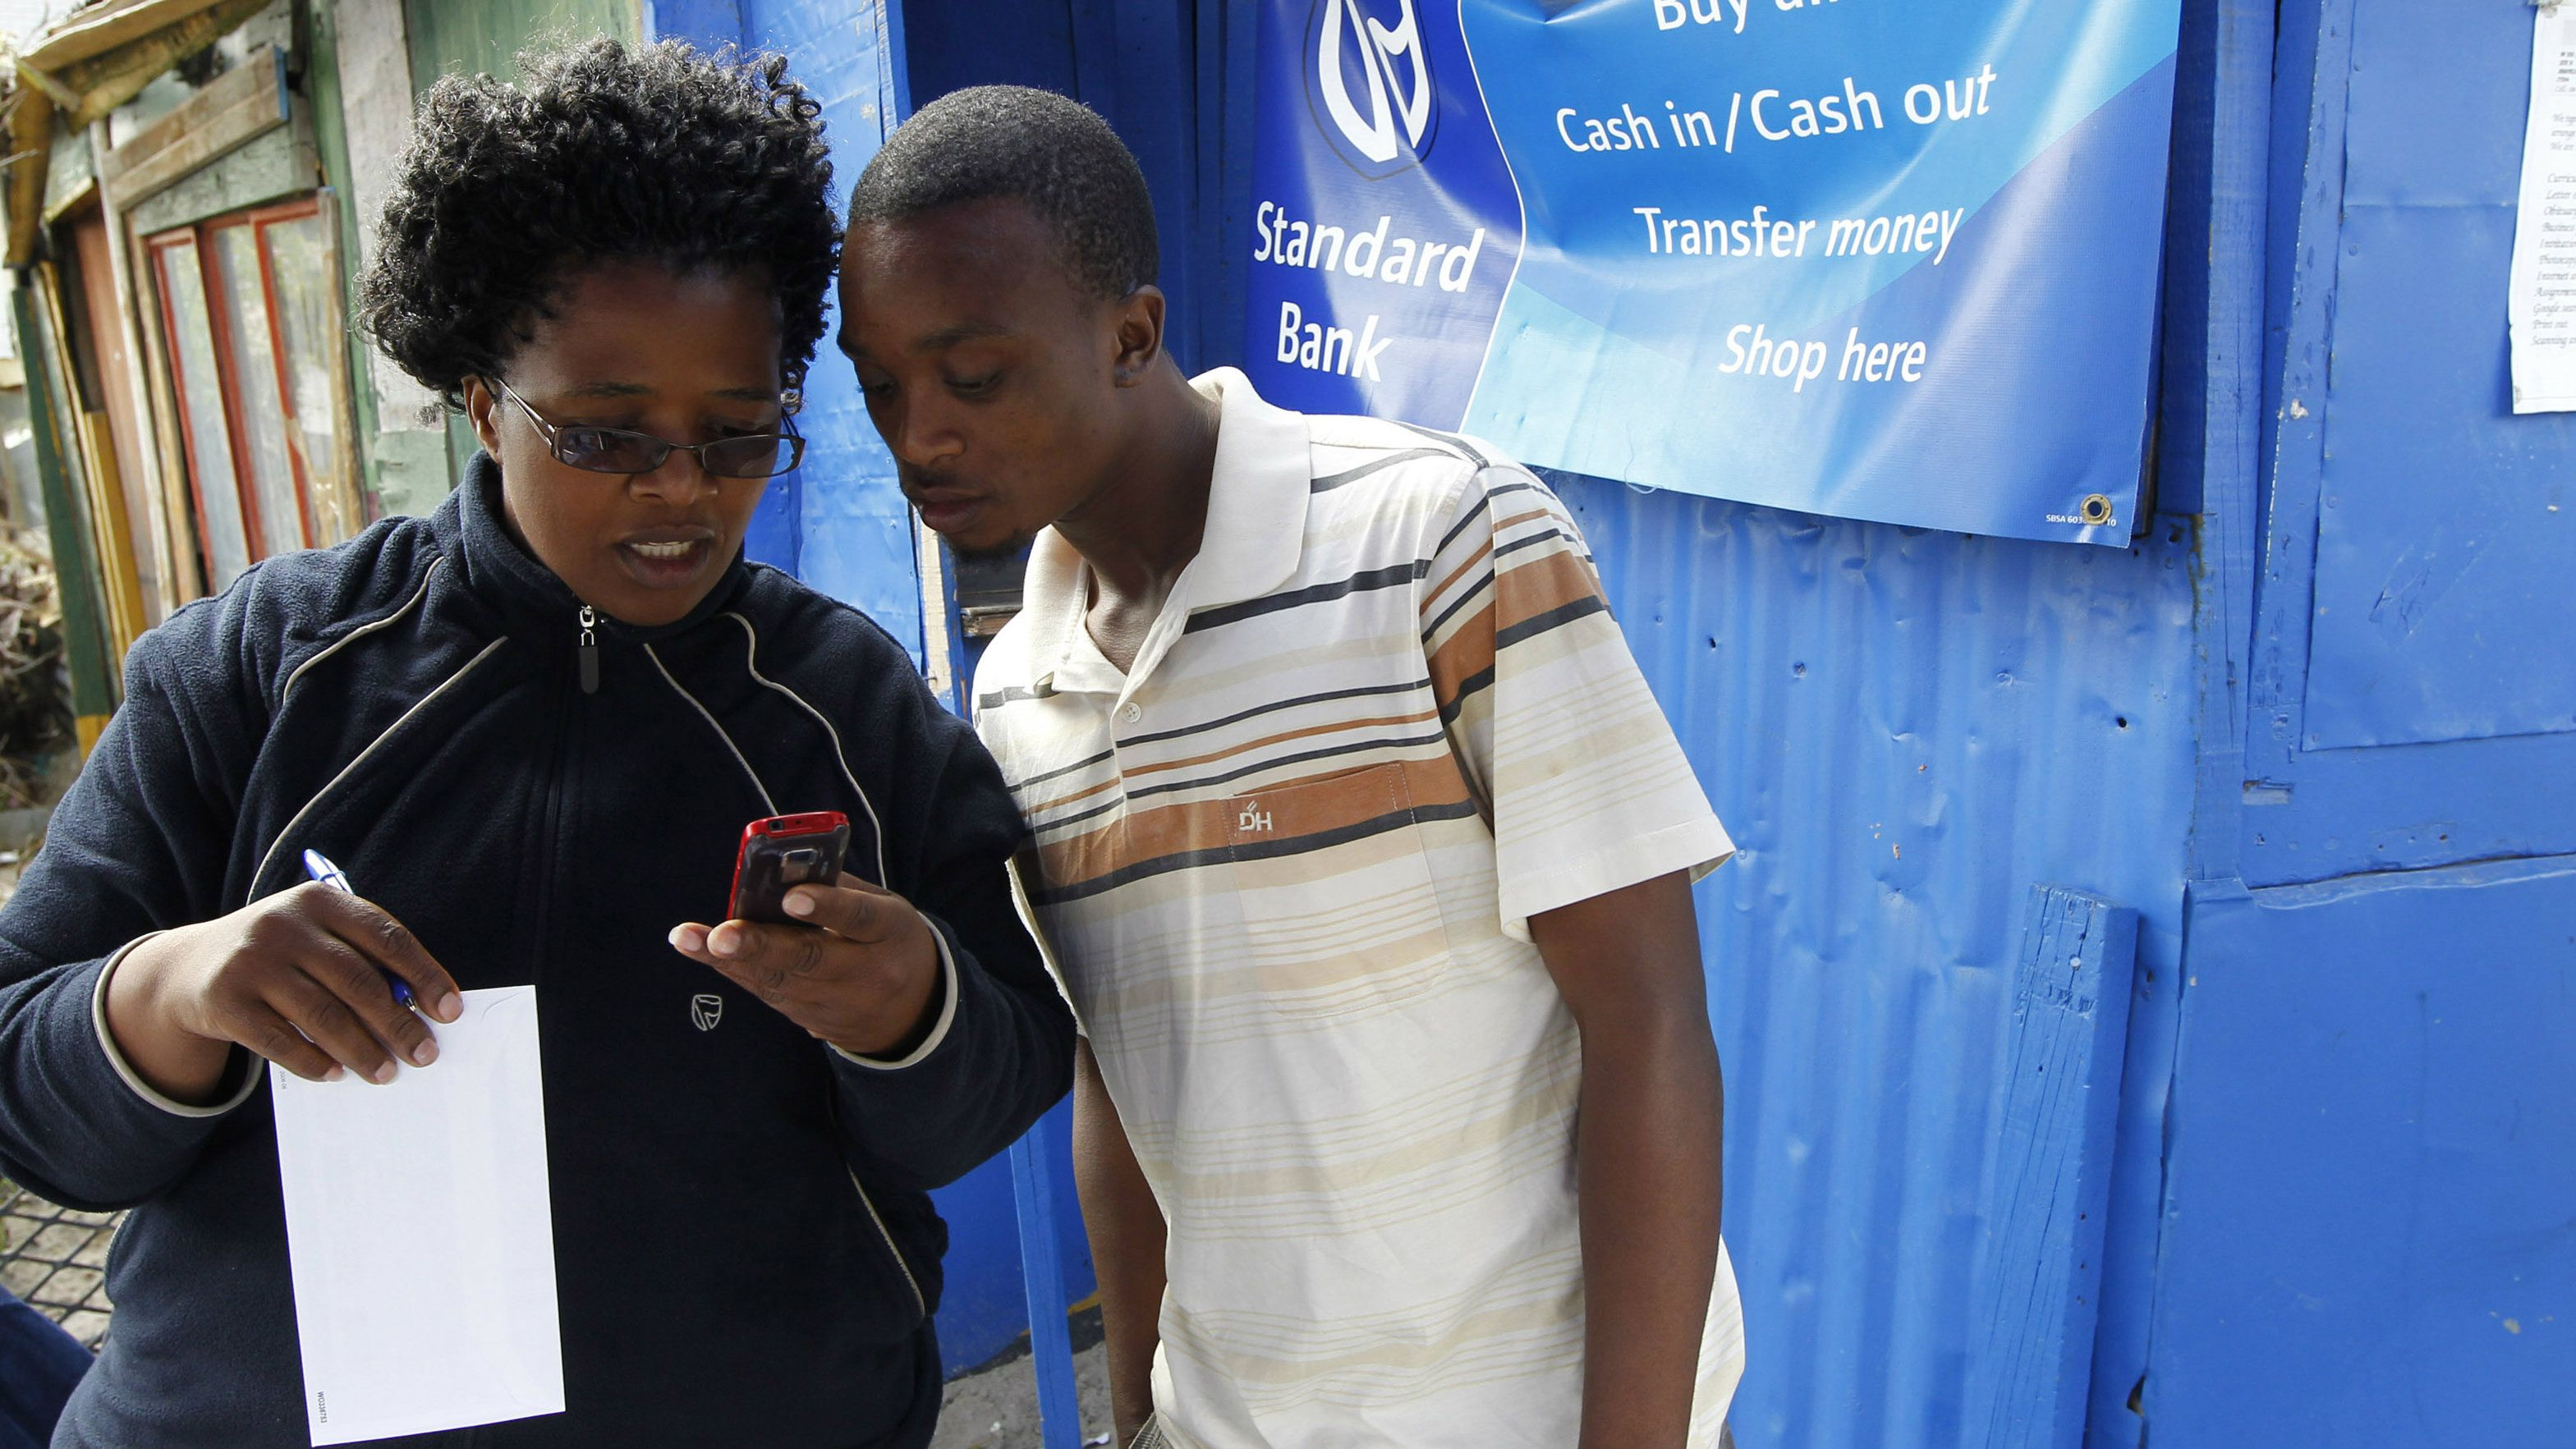 Staff from South Africa's Standard Bank show a newly signed client how to use mobile phone banking as part of a drive to take banking to poorer areas in Cape Town's Khayelitsha township, June 28, 2011. REUTERS/Mike Hutchings (SOUTH AFRICA